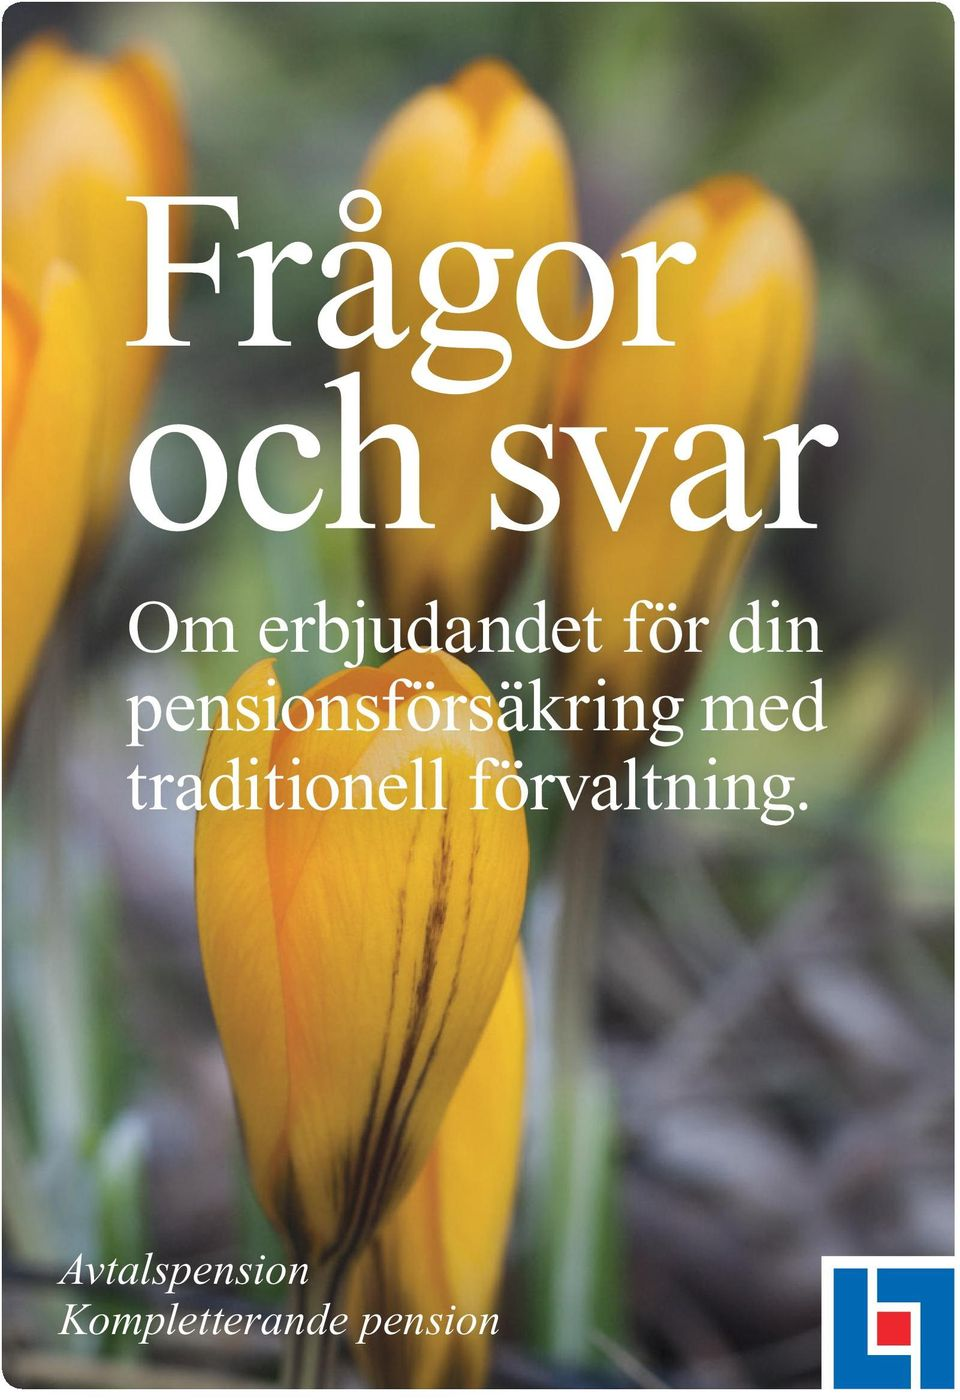 traditionell förvaltning.